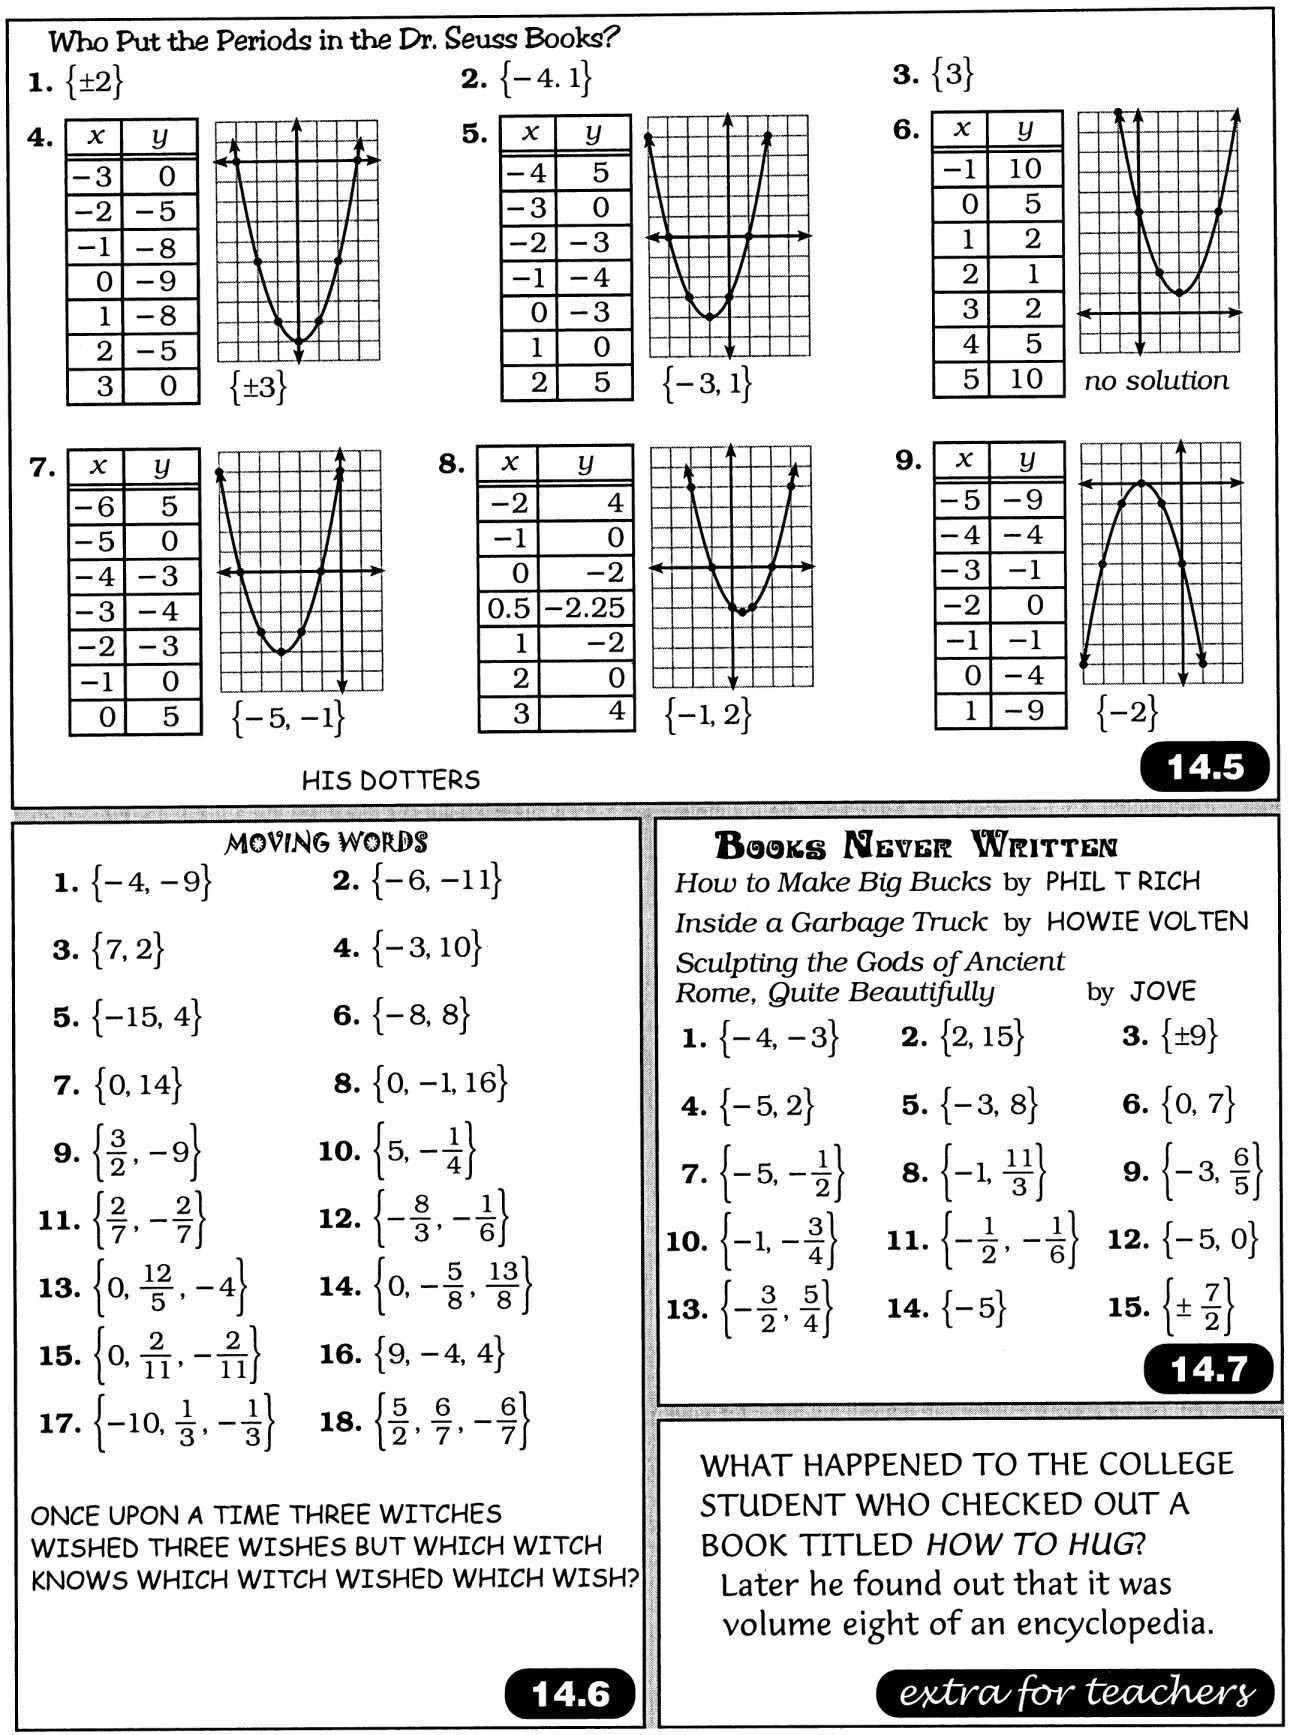 Did You Hear About Math Worksheet Algebra with Pizzazz Answers Along with Moving Words Worksheet C 55 Answers Kidz Activities